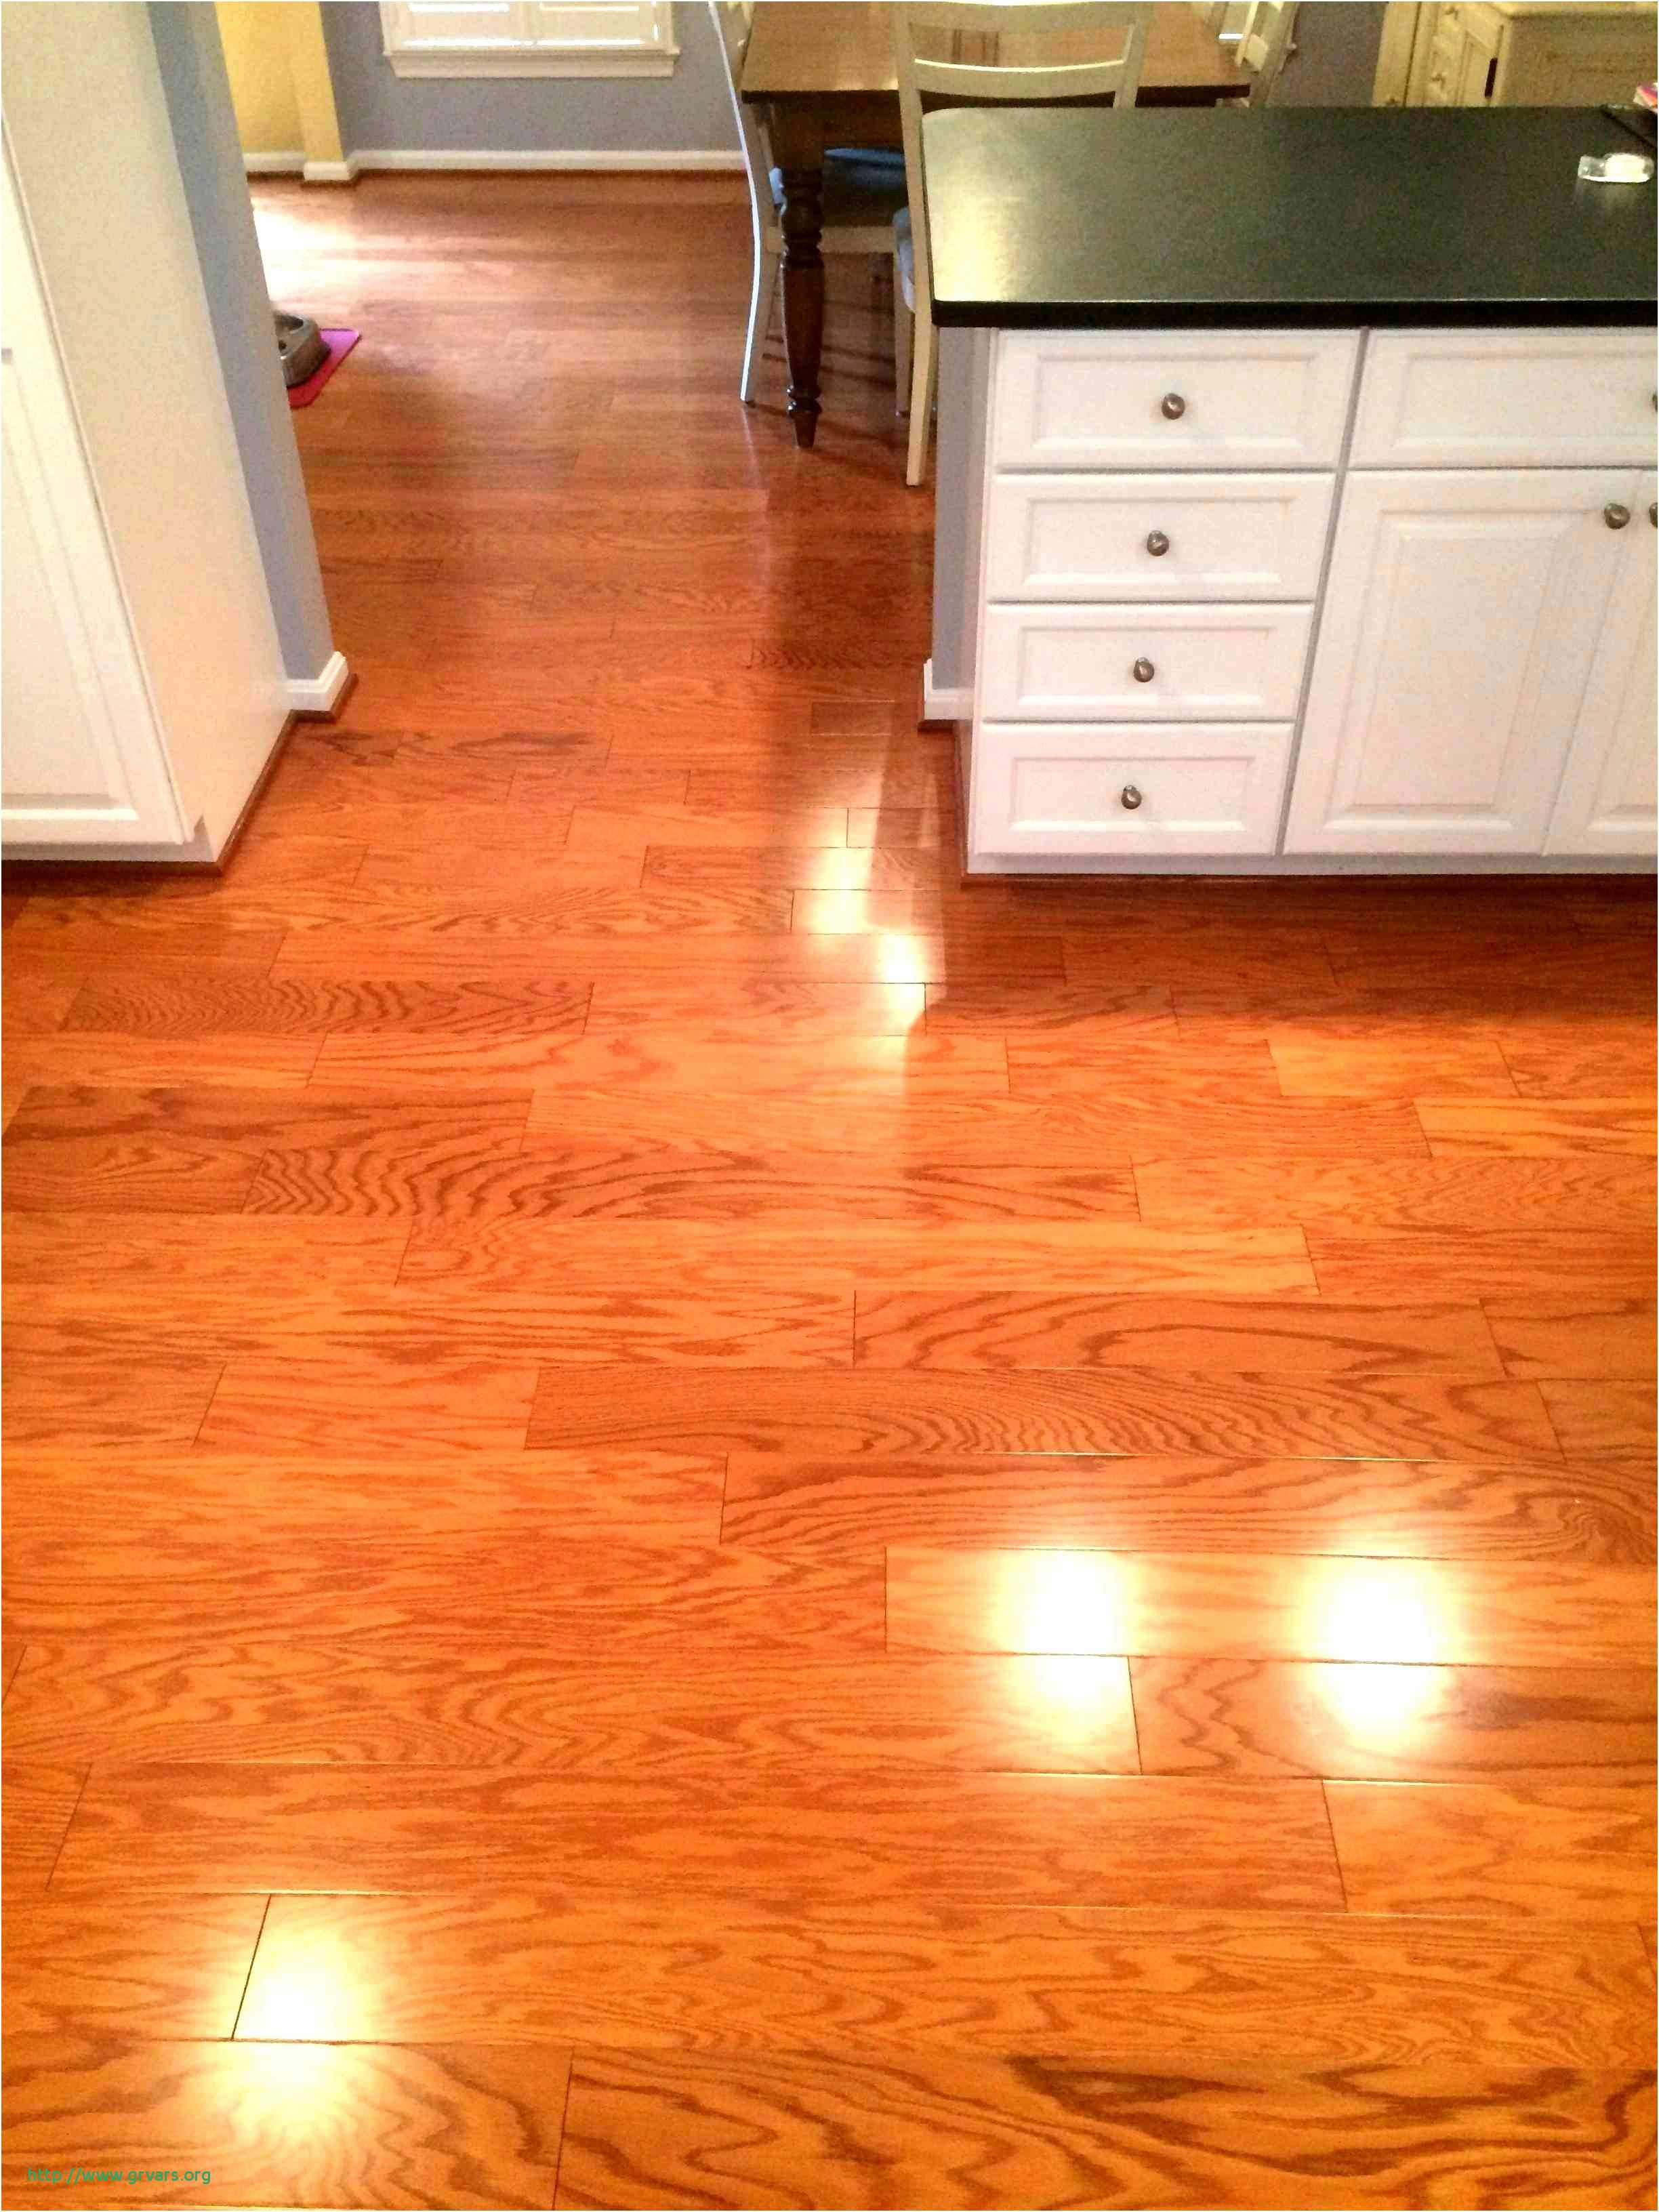 ipe hardwood flooring reviews of 15 charmant how to seal a hardwood floor ideas blog in bruce flooring best where to hardwood flooring inspirational 0d grace place barnegat